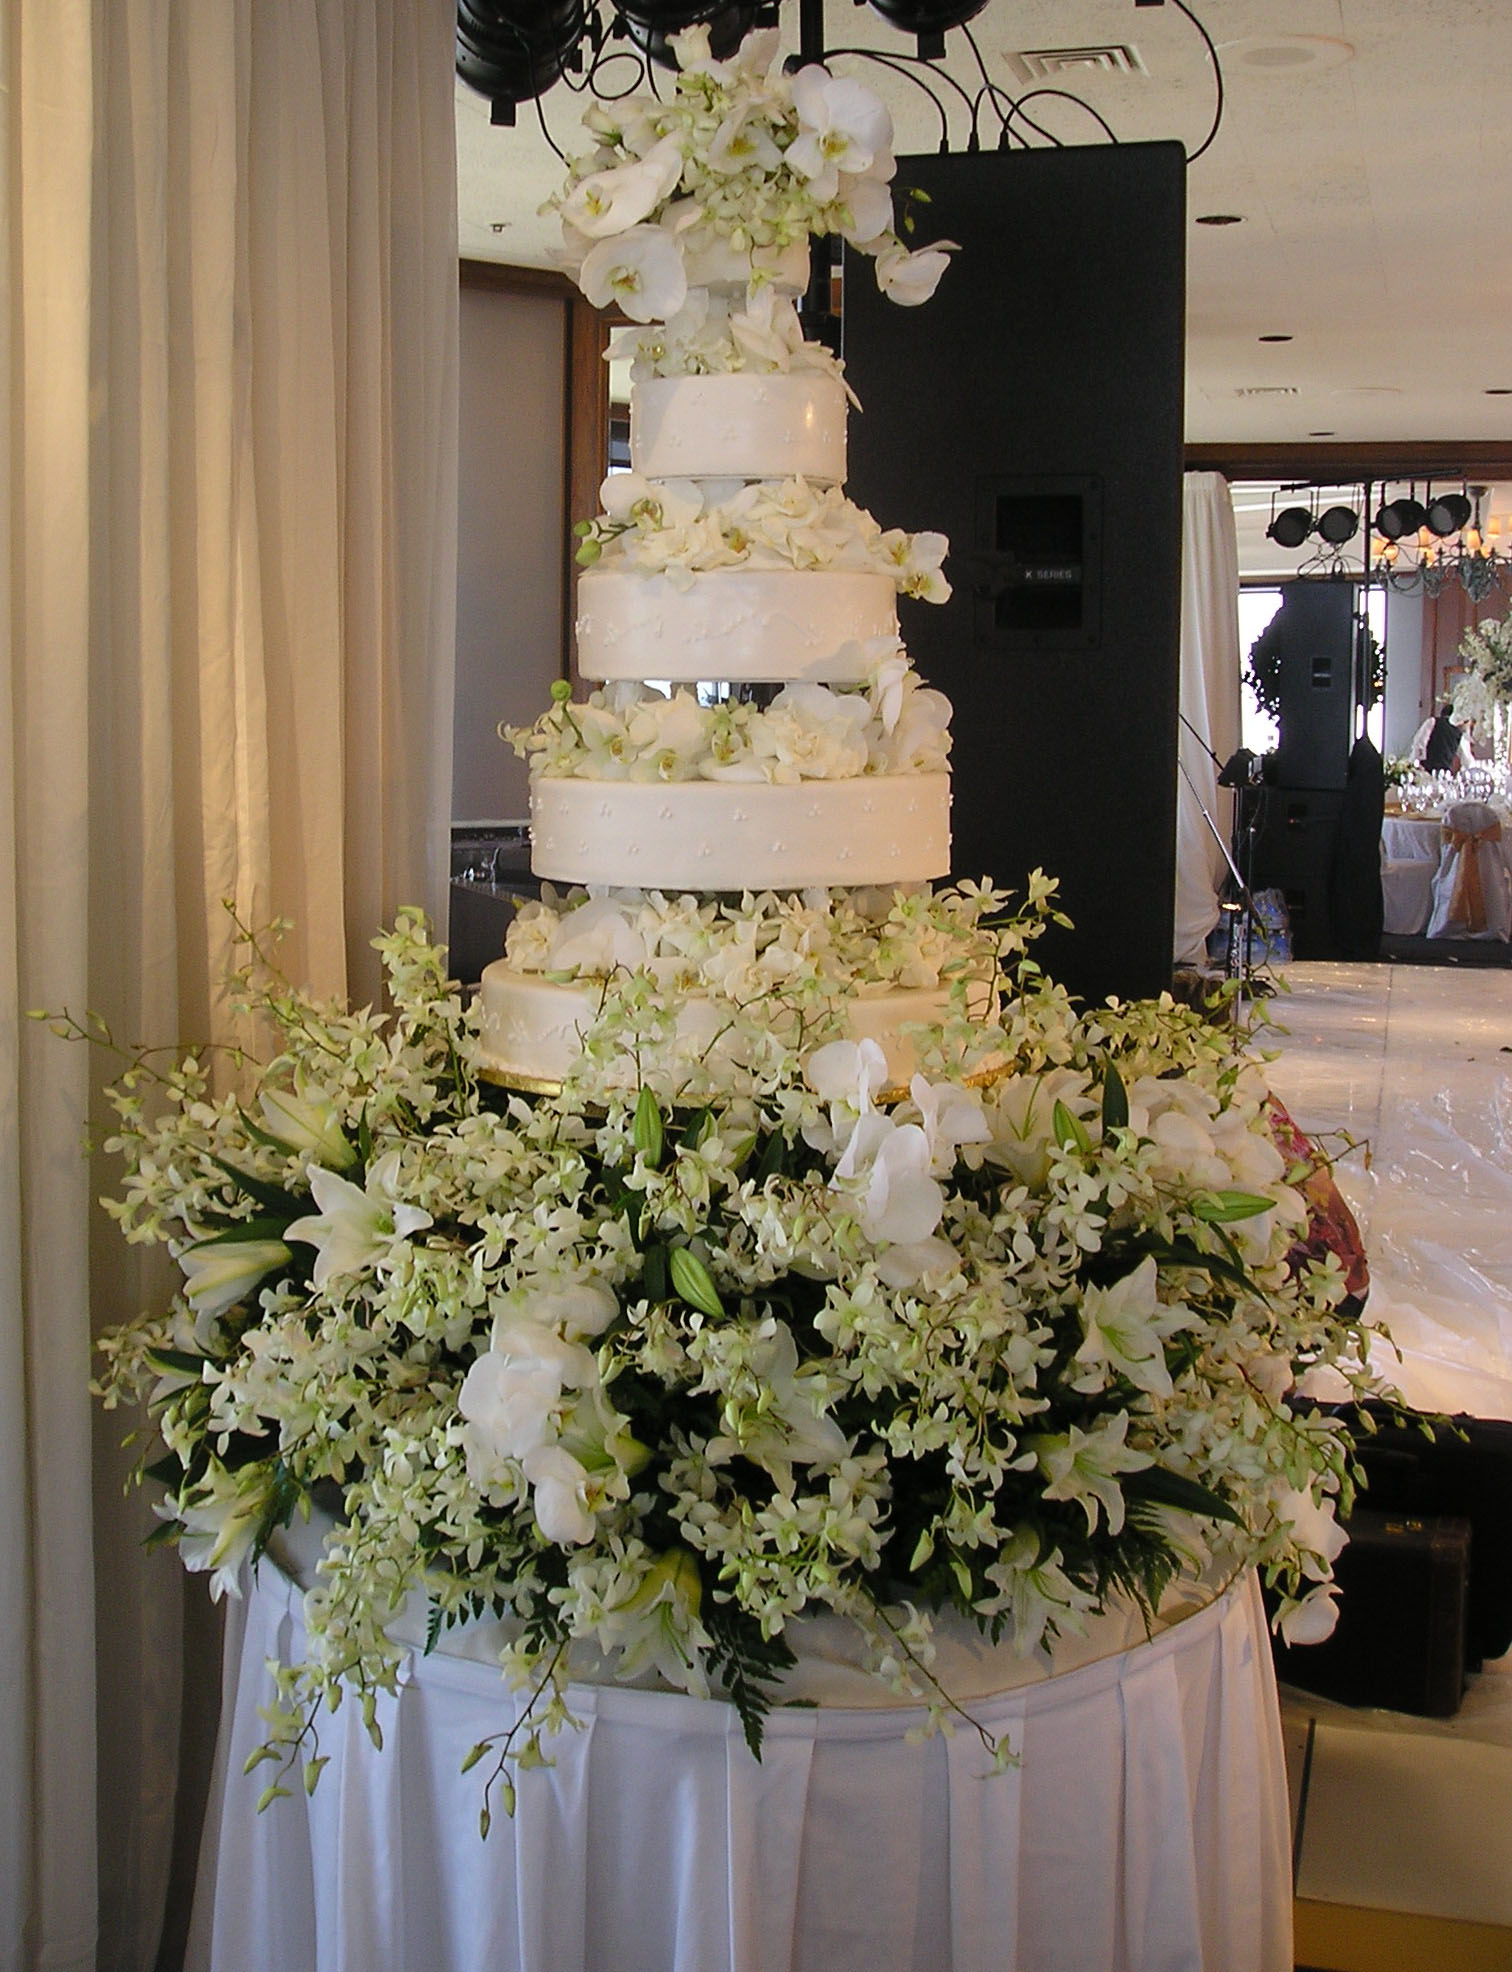 Fabulous Multi Tier Wedding Cake With Dendrobium Orchids By Hoogasian Flowers